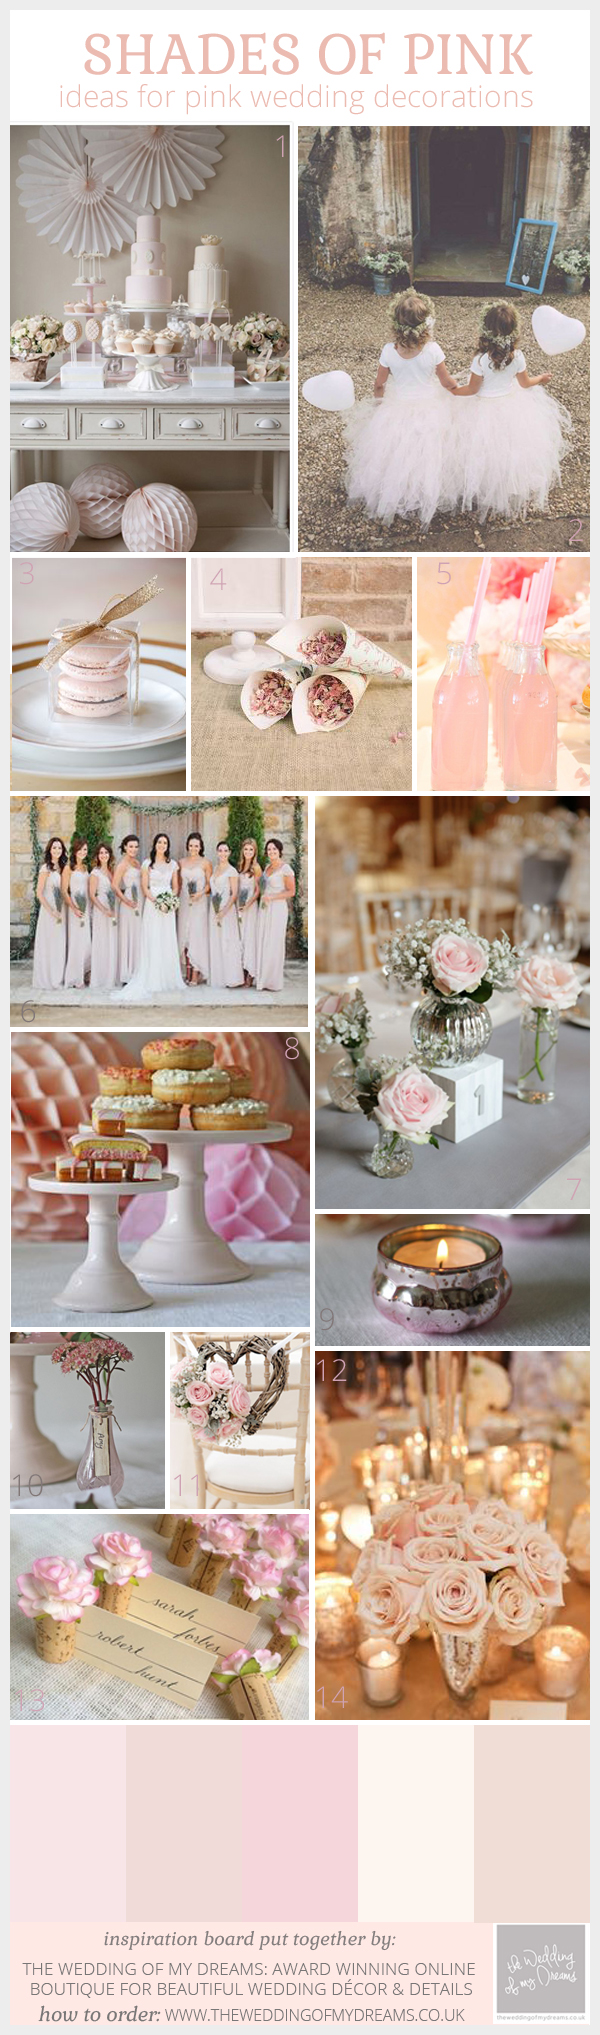 blush pink wedding ideas lovely decorations centrepieces and other ideas for blush pink weddings